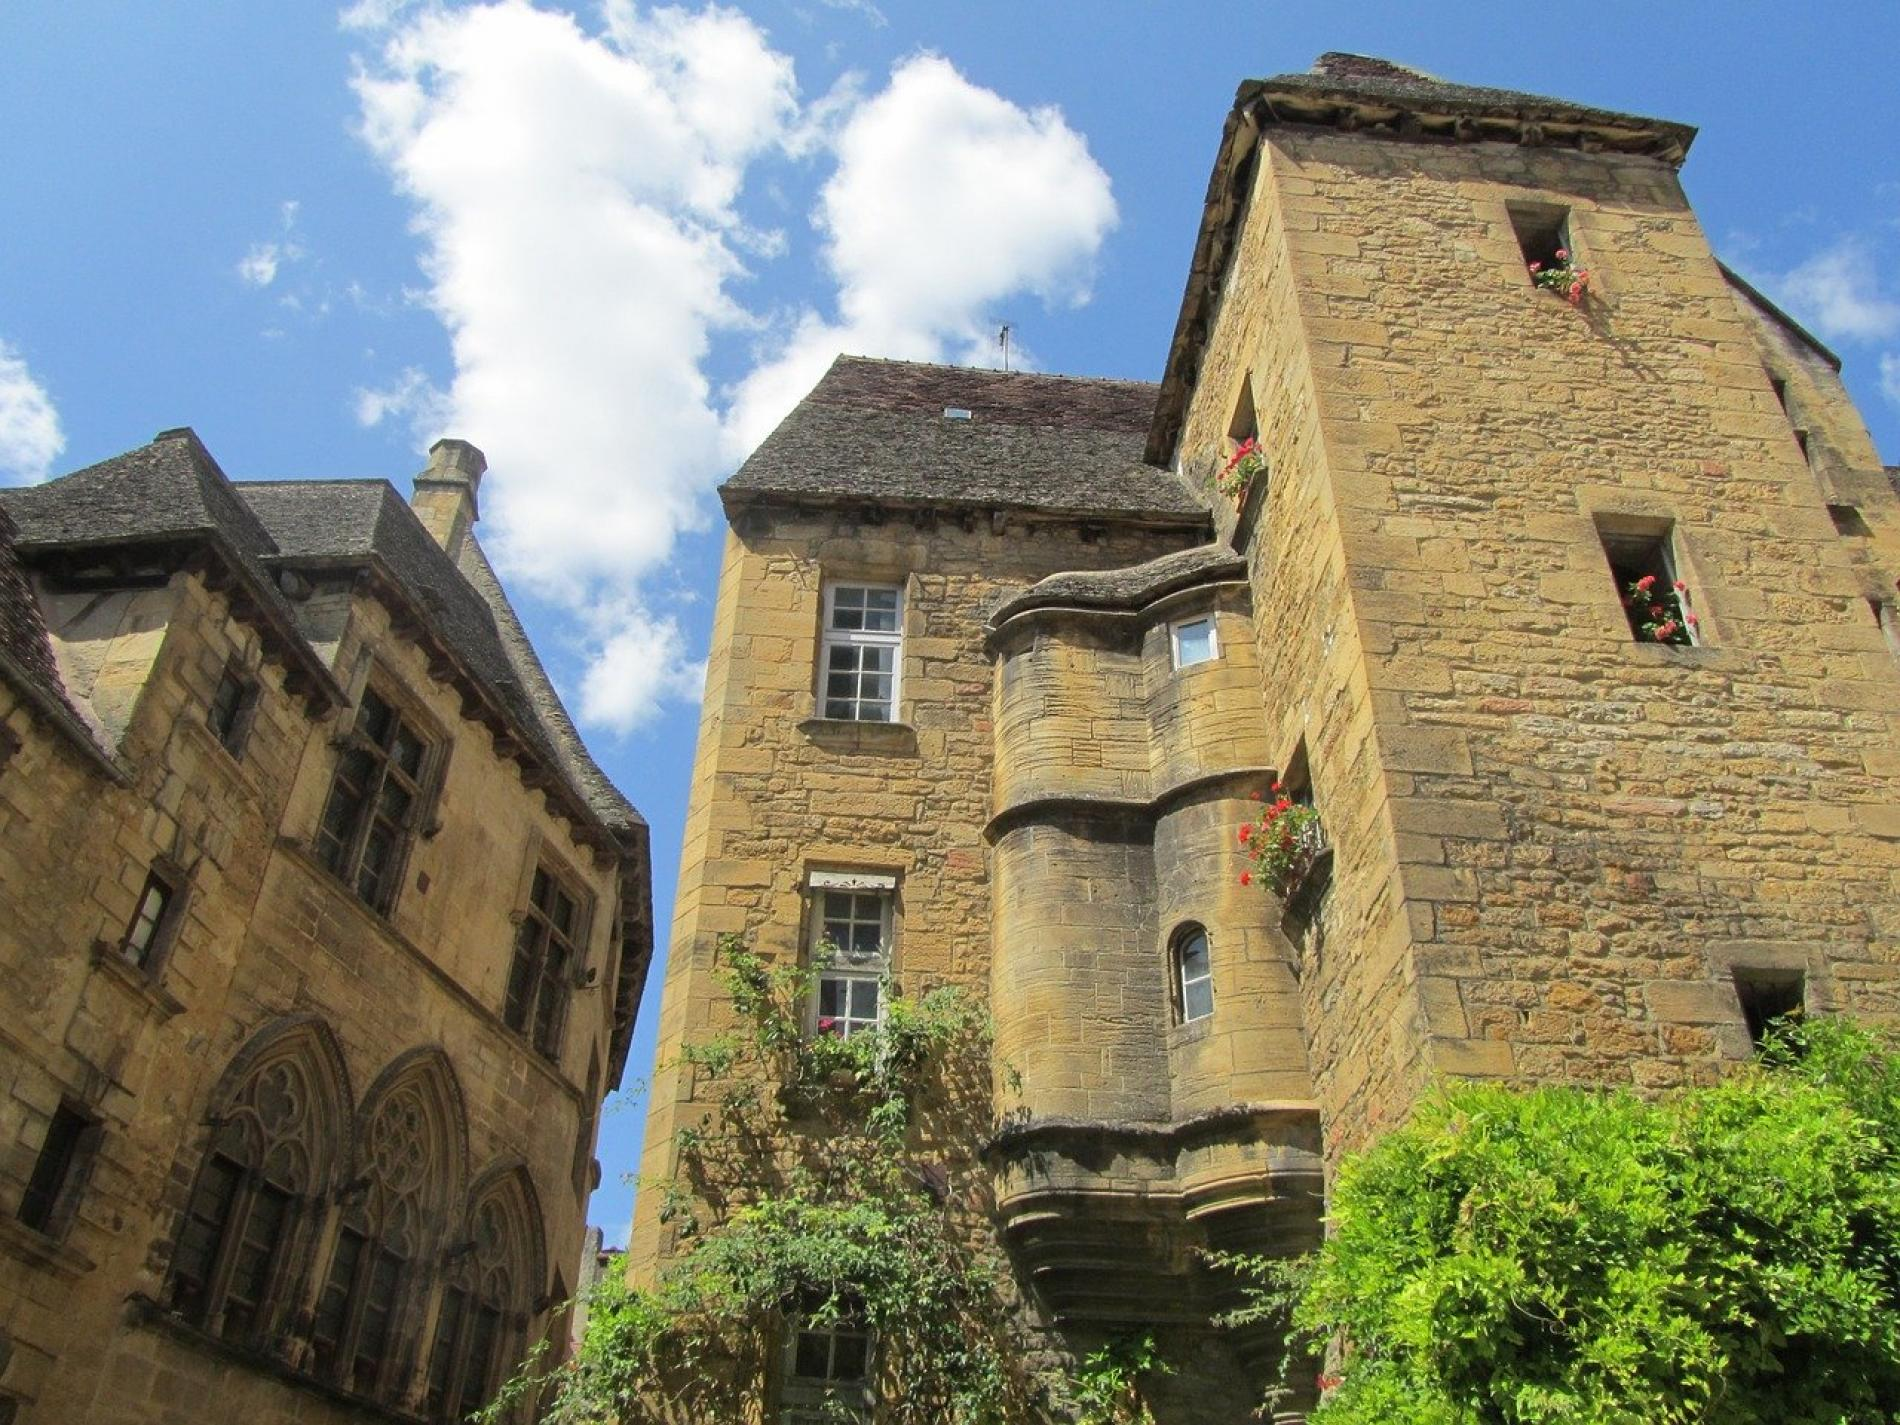 Sarlat and its world-renowned heritage